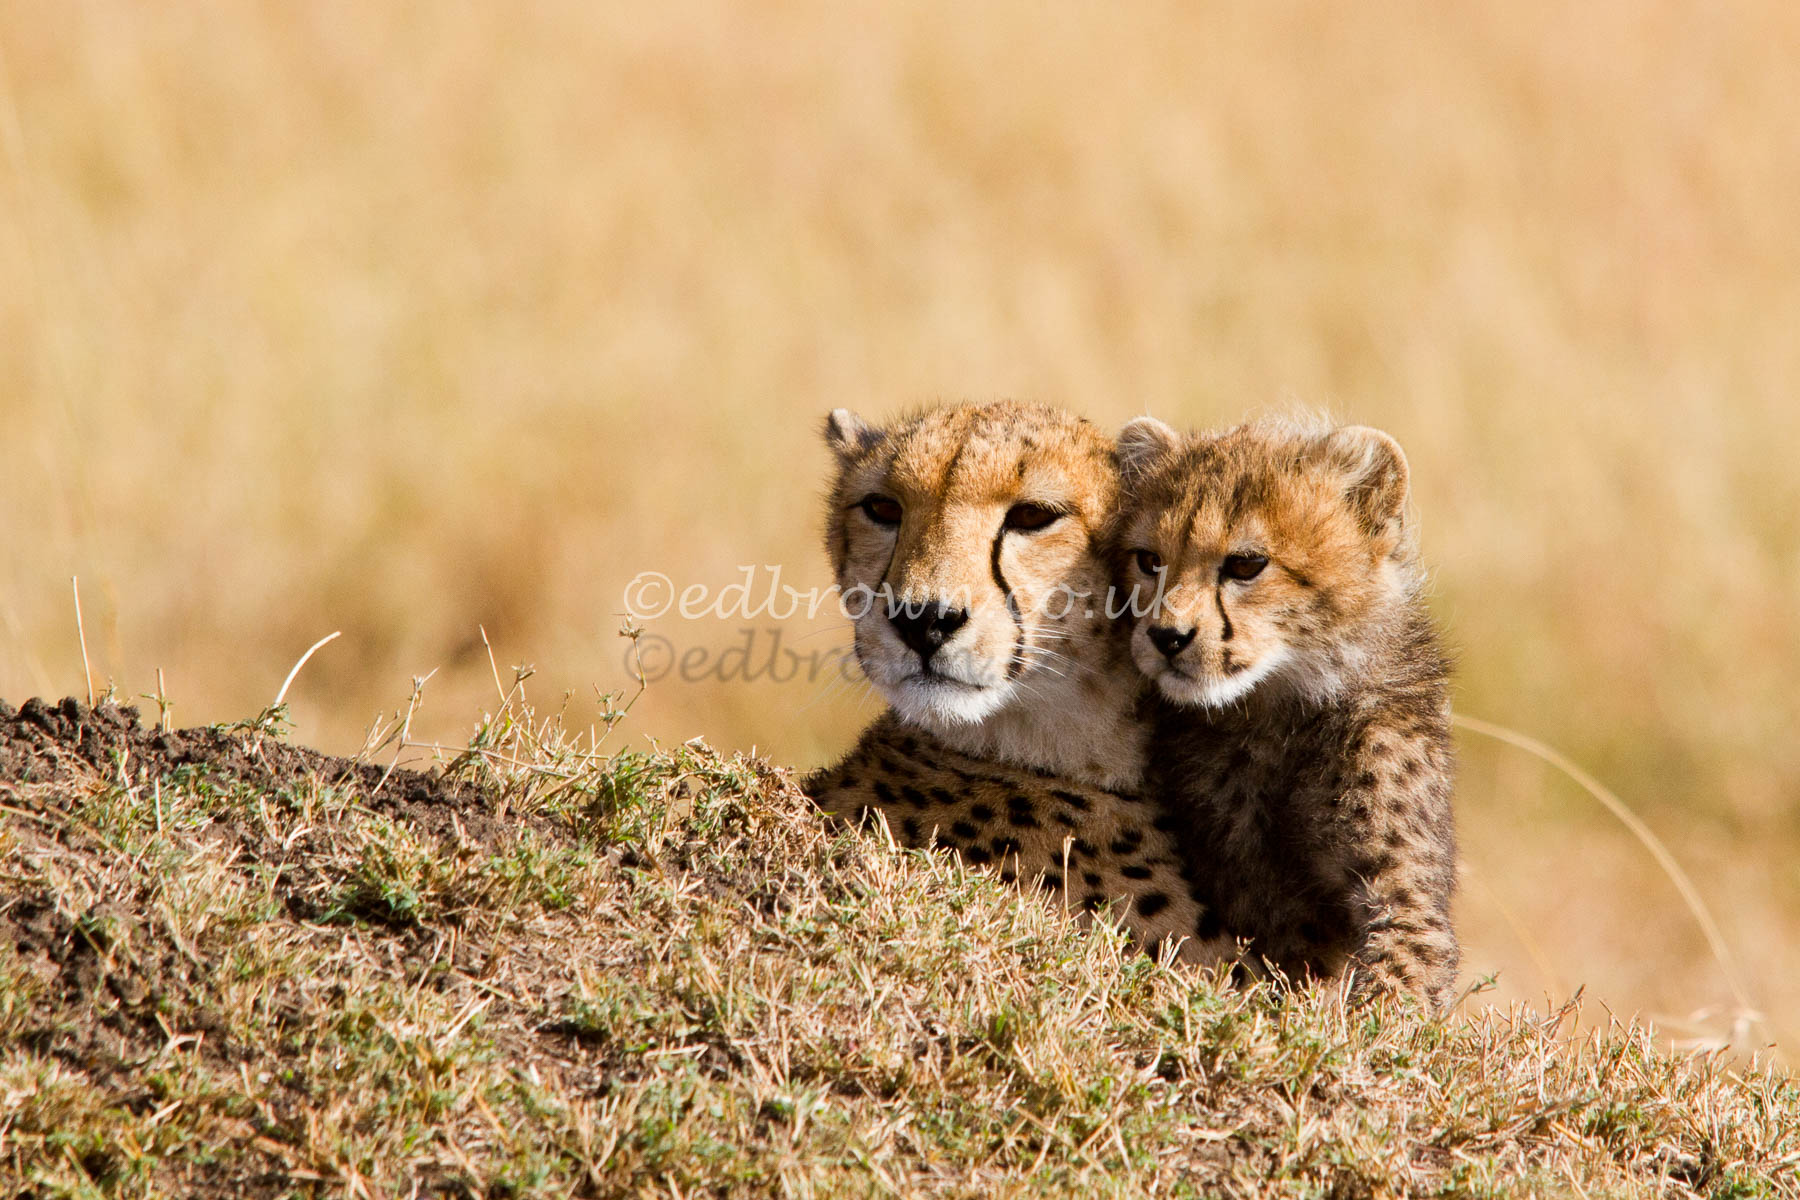 Cheetah (Acinonyx jubatus) and cub